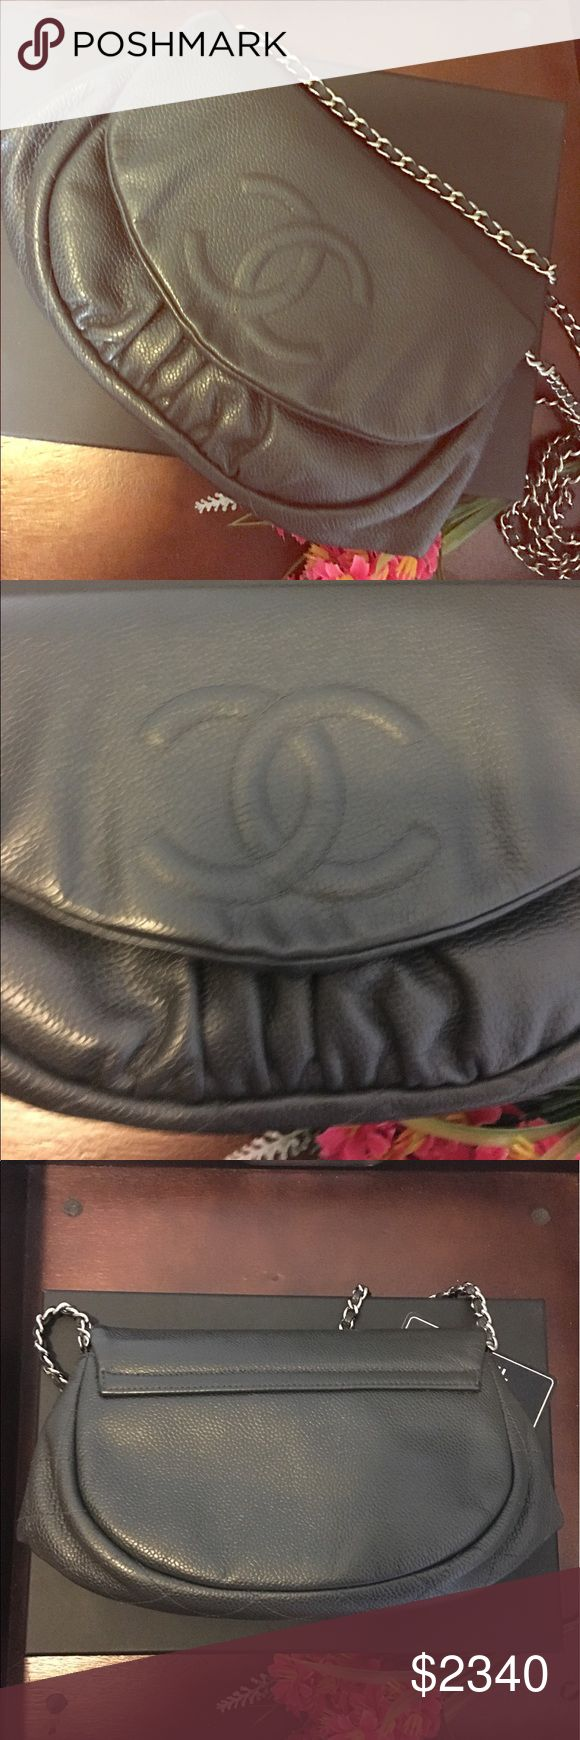 """Authentic CHANEL Caviar WOC - Charcoal Gray Authentic Chanel WOC in deep charcoal gray. Soft caviar leather with silver hardware. EXCELLENT used condition - I regularly use the leather cream Chanel uses to clean/restore items in store - so the only visible wear is on the two corners. It's very minor and not noticeable at all while wearing or carrying around (please refer to pictures of wear in second listing). ACCIDENTALLY DELETED ORIGINAL LISTING - SORRY IF YOU LOST YOUR """"LIKED"""" BOOKMARK…"""